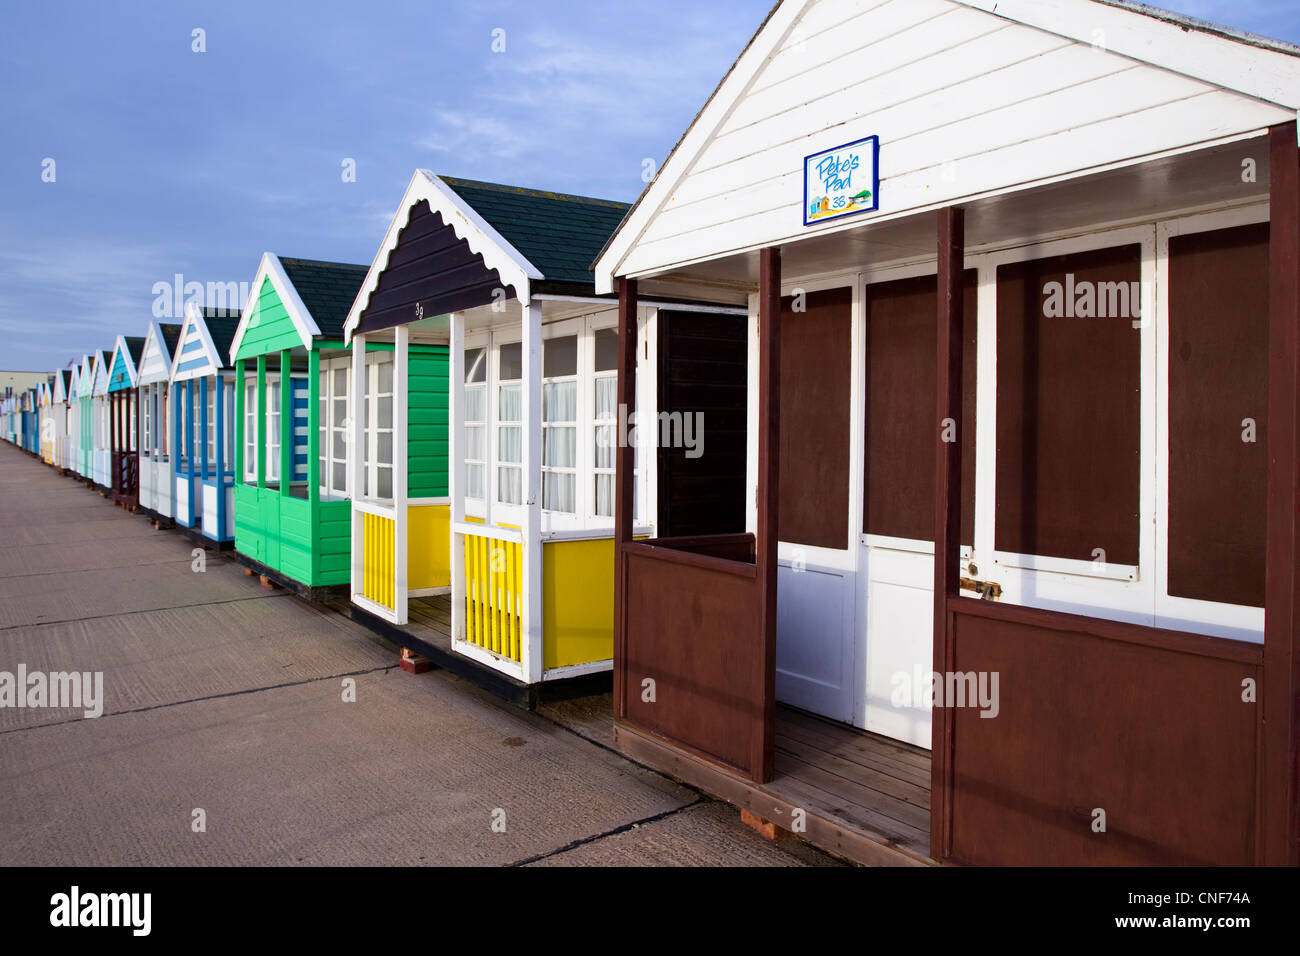 A row of different colored/coloured beach huts receding into the distance from the right to the left of the photo. - Stock Image